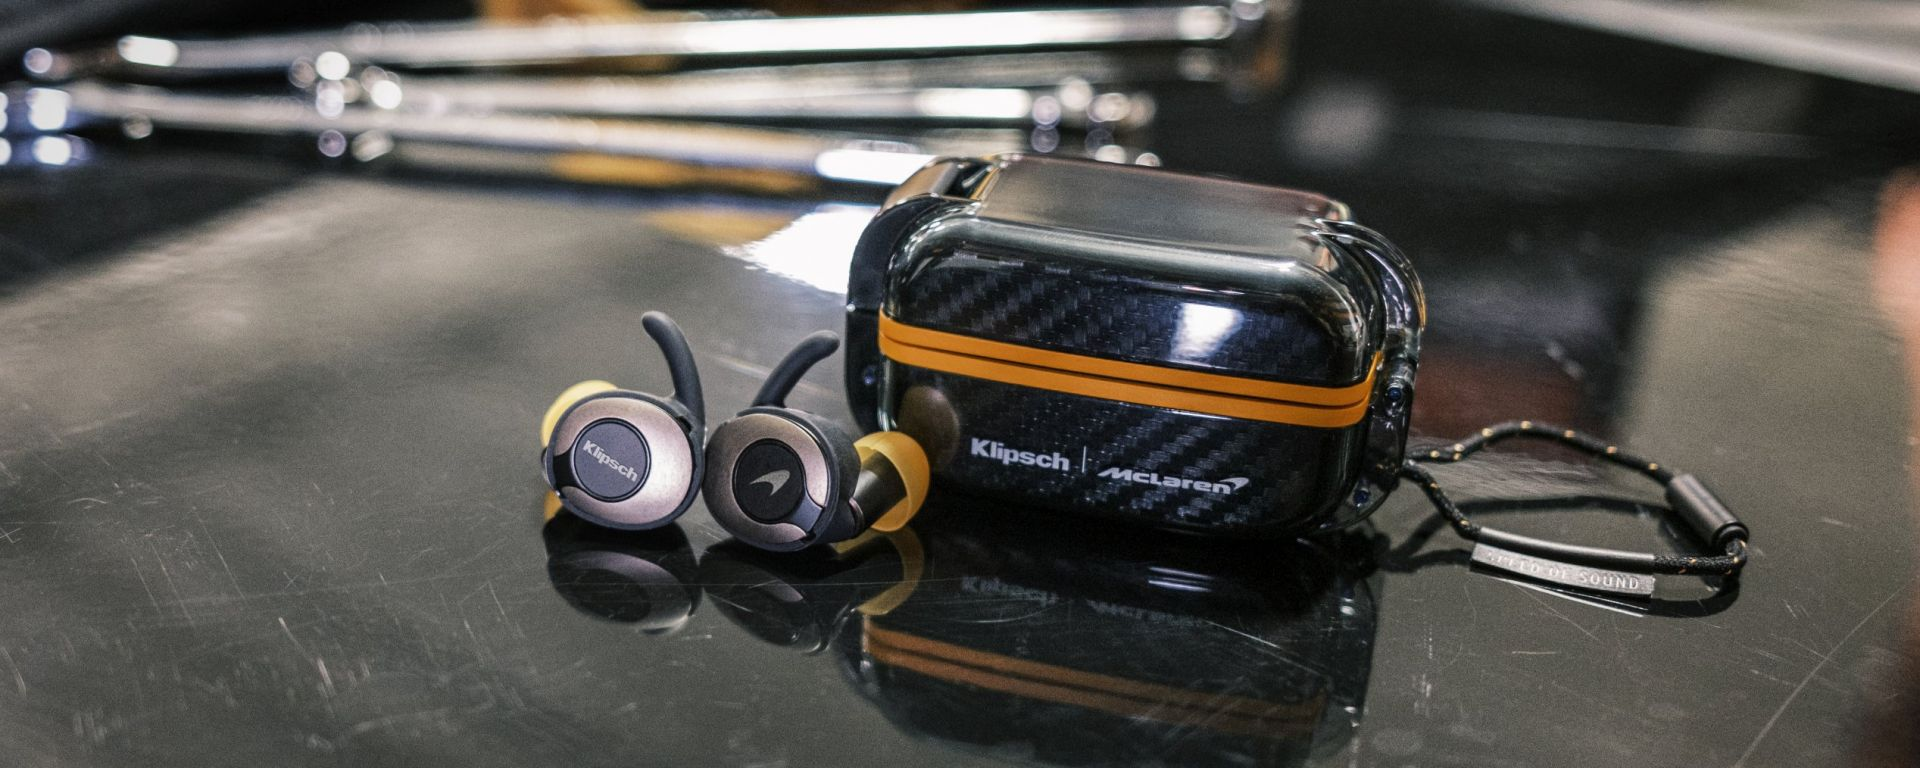 Klipsch T5 True Wireless Sport McLaren: auricolari in edizione limitata